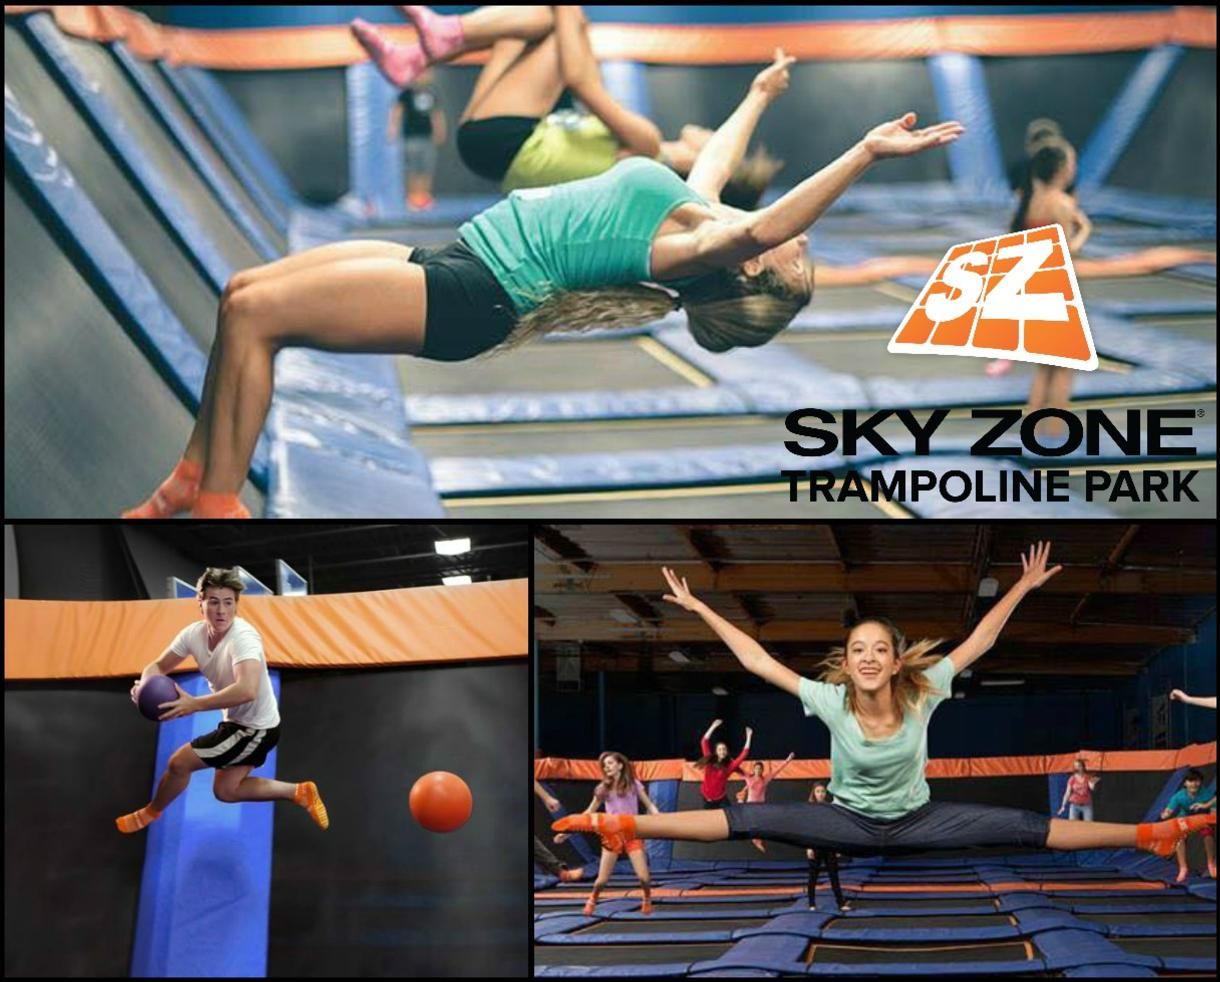 Valid Any Day!! $34 for THREE 60-Minute Jump Passes at SKY ZONE TRAMPOLINE PARK - Gaithersburg, Columbia, Manassas and Fredericksburg (Up to 35% Off)